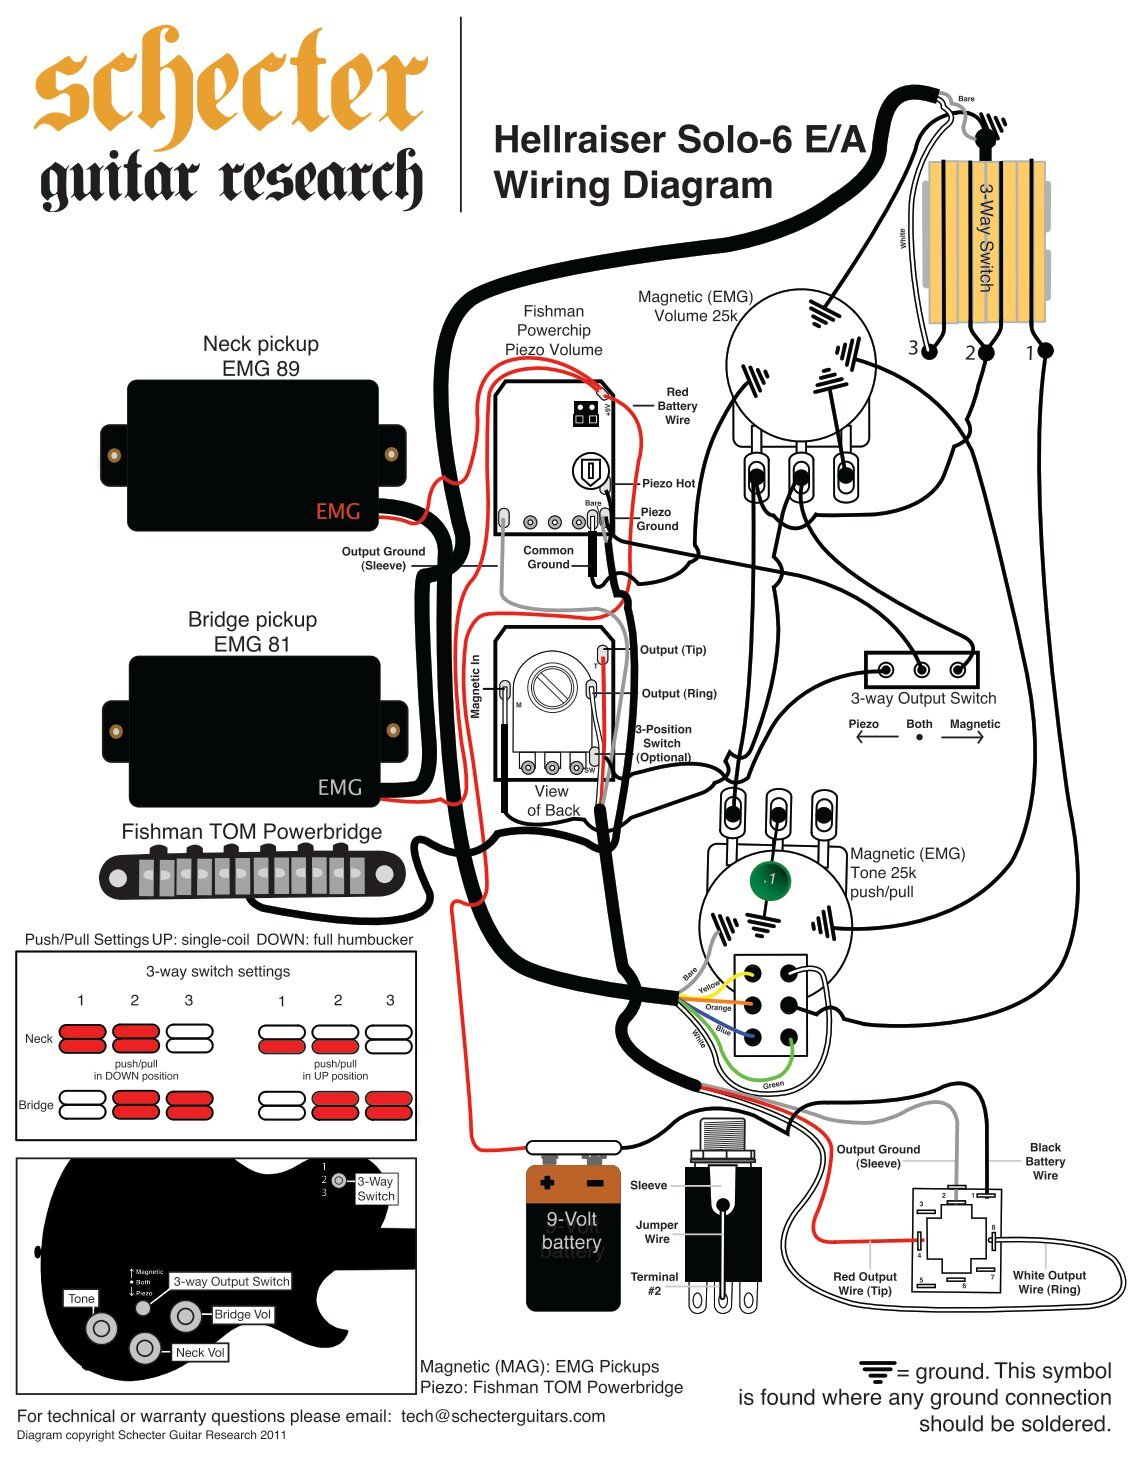 hellraiser solo 6 wiring diagram schecter guitars?resize\\\\\\\\\\\\\\\\\\\\\\\\\\\\\\\\\\\\\\\\\\\\\\\\\\\\\\\\\\\\\\\\\\\\\\\\\\\\\\\\\\\\\\\\\\\\\\\\\\\\\\\\\\\\\\\\\\\\\\\\\\\\\\\\\\\\\\\\\\\\\\\\\\\\\\\\\\\\\\\\\\\\\\\\\\\\\\\\\\\\\\\\\\\\\\\\\\\\\\\\\\\\\\\\\\\\\\\\\\\\\\\\\\\\\\\\\\\\\\\\\\\\\\\\\\\\\\\=665%2C860\\\\\\\\\\\\\\\\\\\\\\\\\\\\\\\\\\\\\\\\\\\\\\\\\\\\\\\\\\\\\\\\\\\\\\\\\\\\\\\\\\\\\\\\\\\\\\\\\\\\\\\\\\\\\\\\\\\\\\\\\\\\\\\\\\\\\\\\\\\\\\\\\\\\\\\\\\\\\\\\\\\\\\\\\\\\\\\\\\\\\\\\\\\\\\\\\\\\\\\\\\\\\\\\\\\\\\\\\\\\\\\\\\\\\\\\\\\\\\\\\\\\\\\\\\\\\\\&ssl\\\\\\\\\\\\\\\\\\\\\\\\\\\\\\\\\\\\\\\\\\\\\\\\\\\\\\\\\\\\\\\\\\\\\\\\\\\\\\\\\\\\\\\\\\\\\\\\\\\\\\\\\\\\\\\\\\\\\\\\\\\\\\\\\\\\\\\\\\\\\\\\\\\\\\\\\\\\\\\\\\\\\\\\\\\\\\\\\\\\\\\\\\\\\\\\\\\\\\\\\\\\\\\\\\\\\\\\\\\\\\\\\\\\\\\\\\\\\\\\\\\\\\\\\\\\\\\=1 emg wiring diagram & remarkable zakk wylde emg wiring diagram emg les paul wiring diagram at gsmx.co